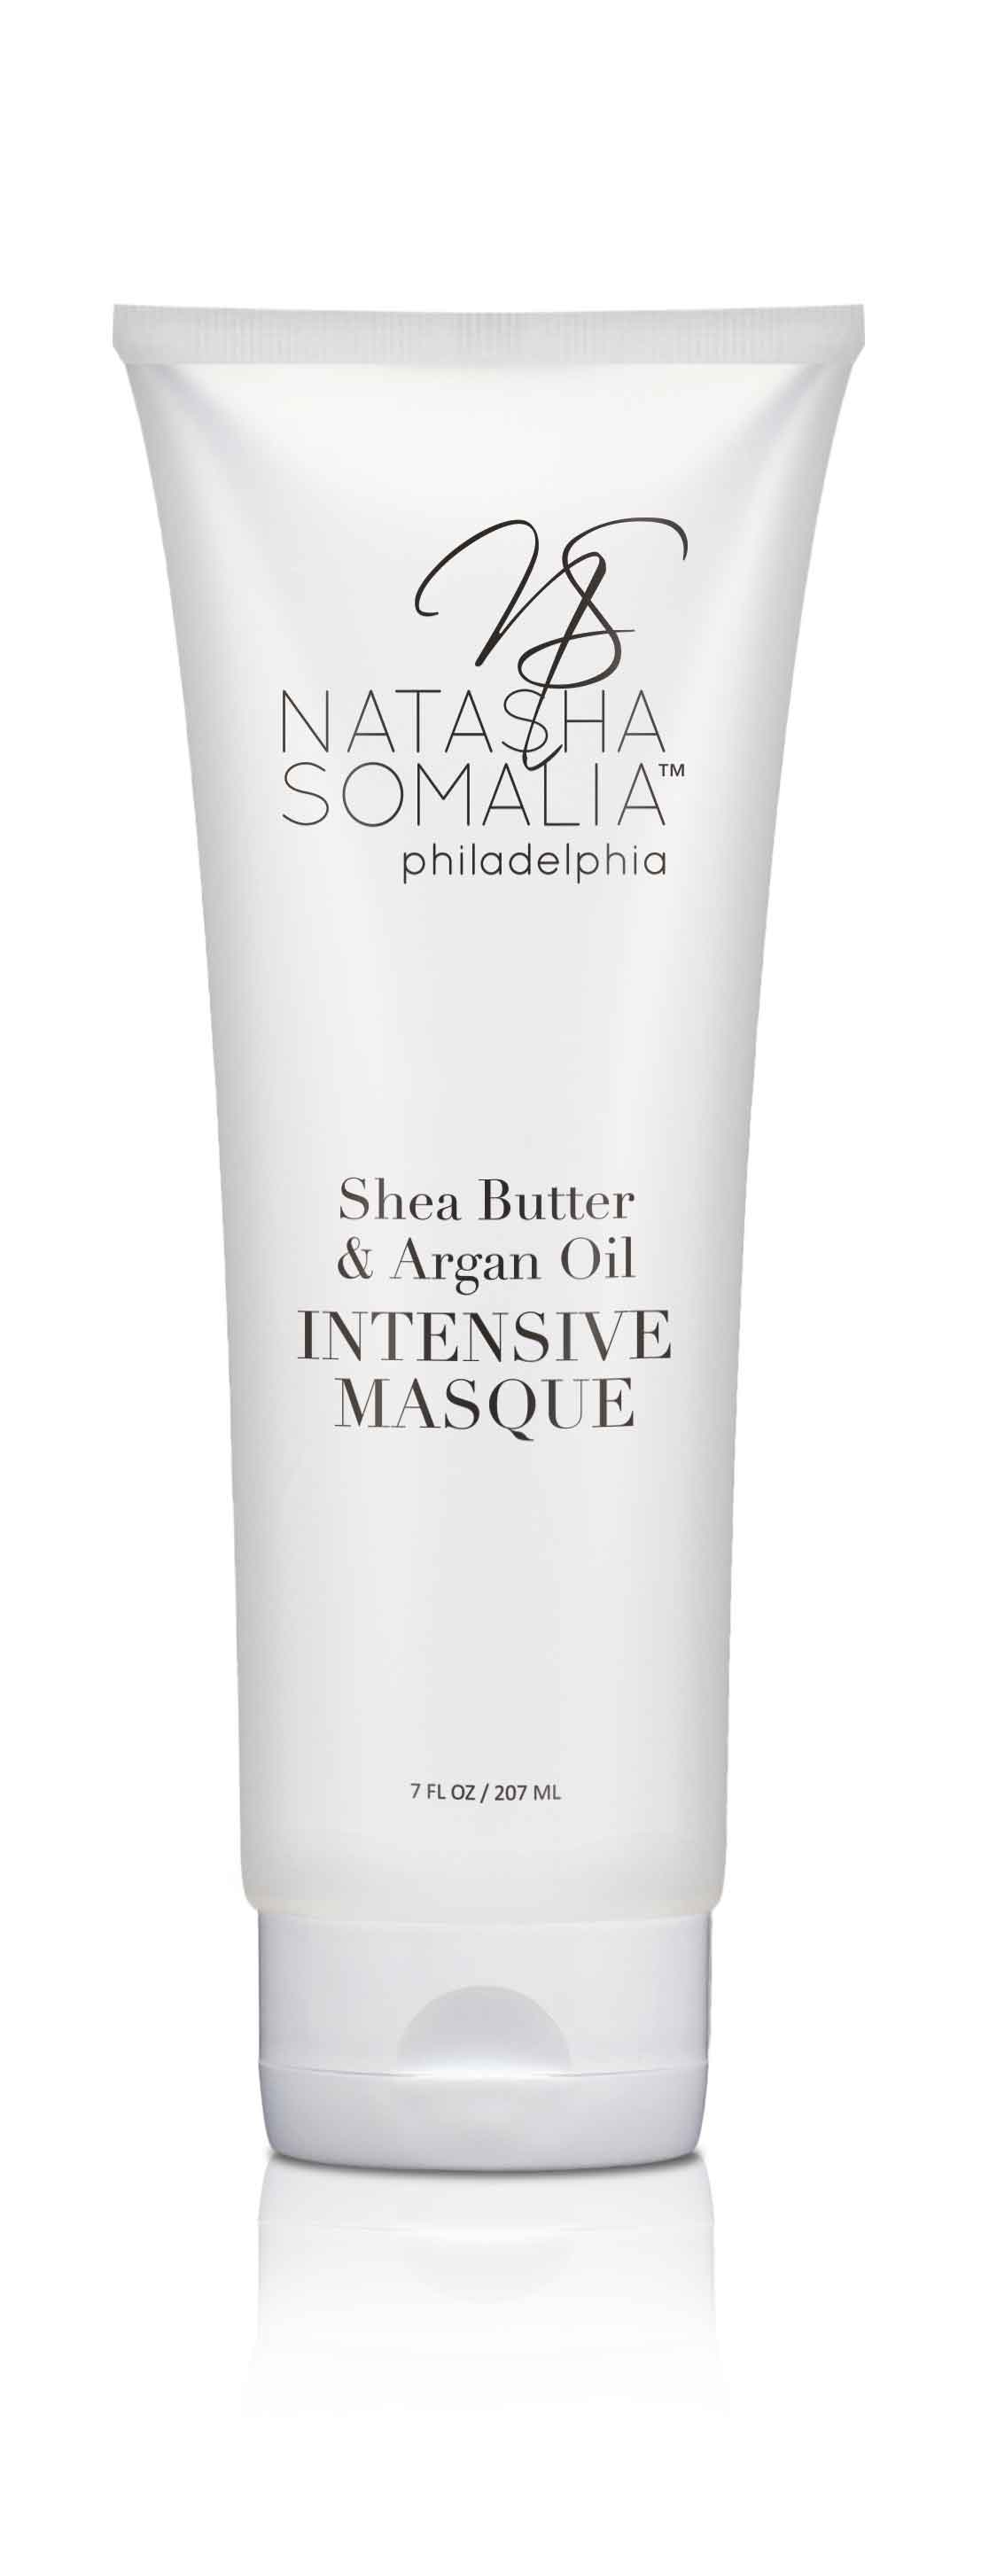 Shea Butter & Argan Oil